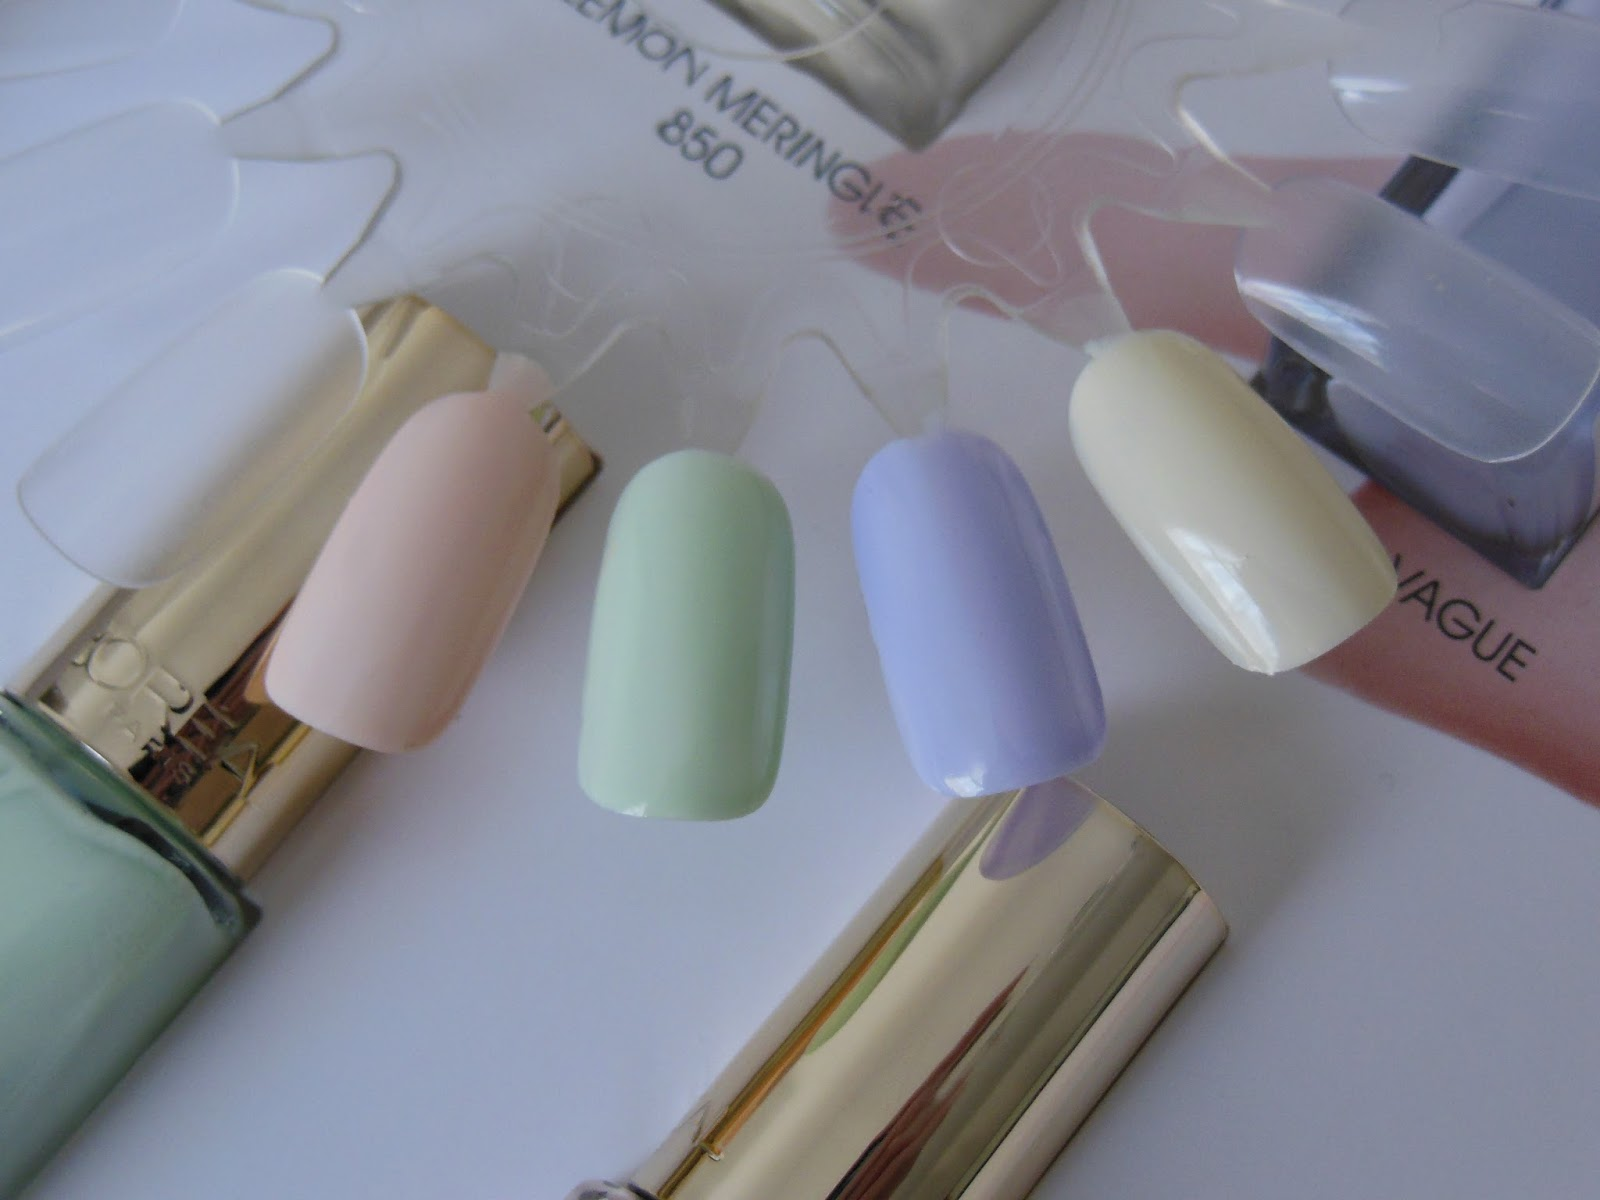 Loreal les blancs nail polish swatches